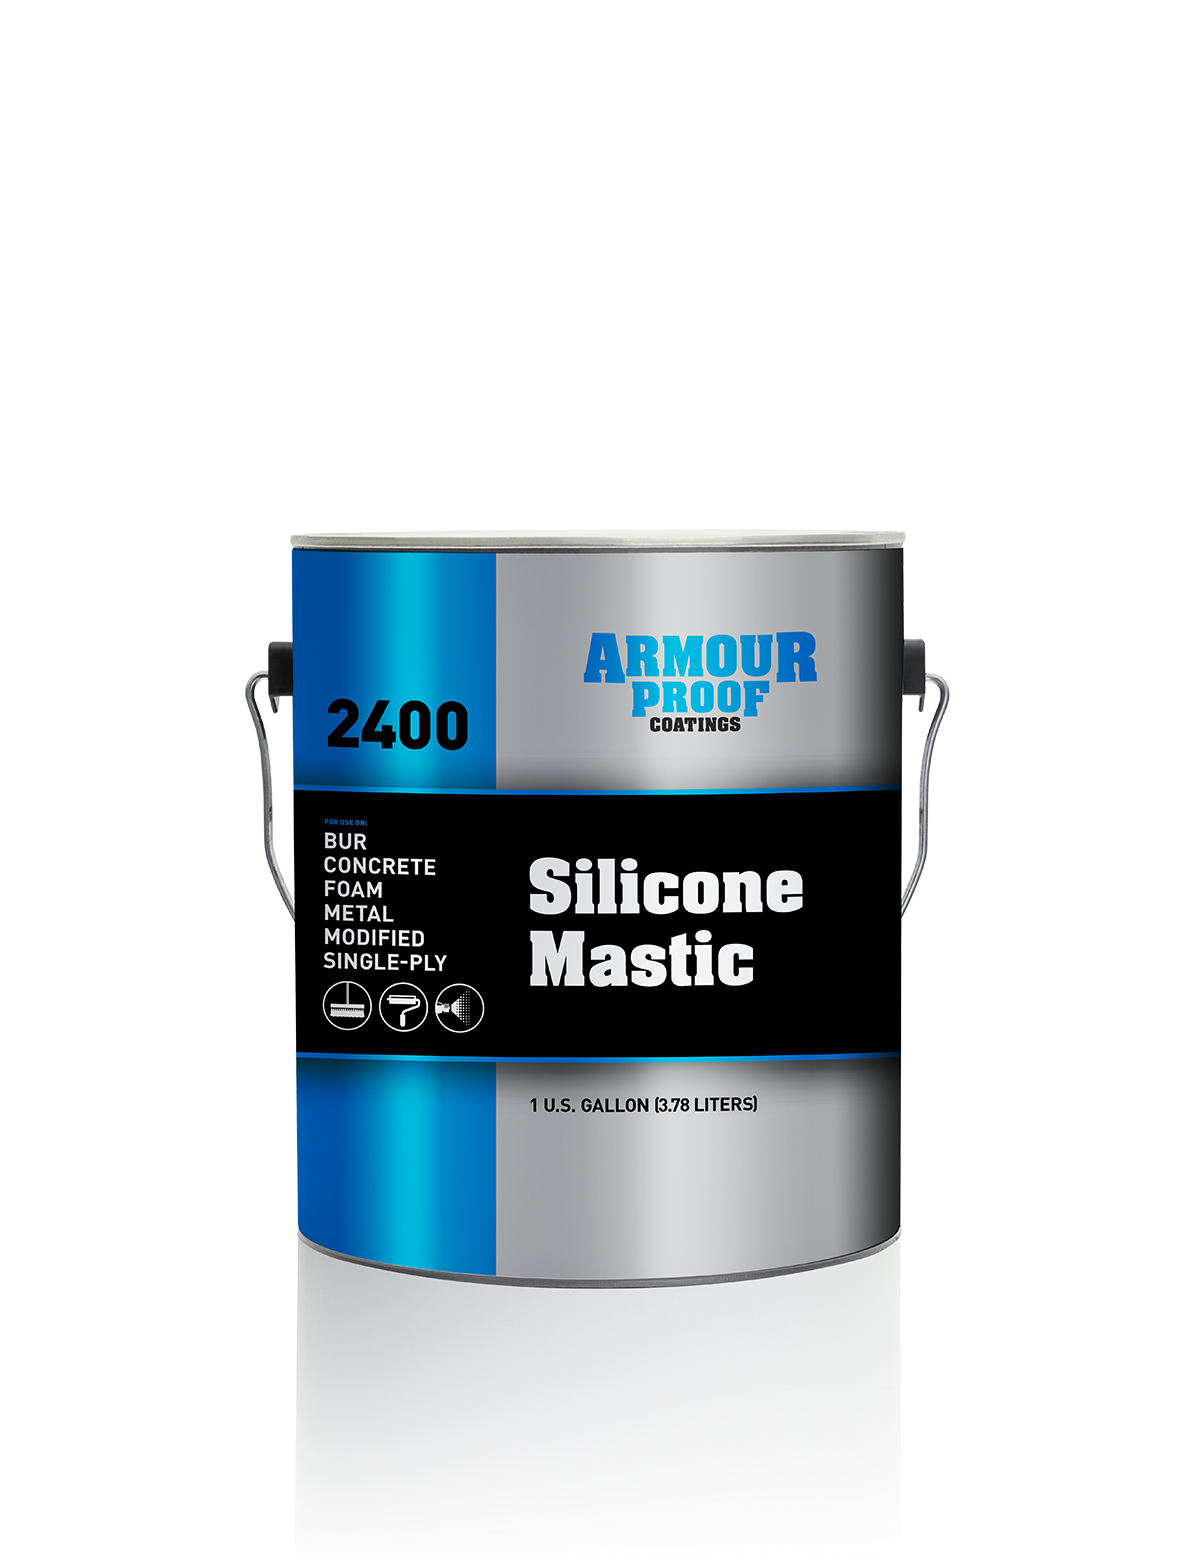 Ap 2400 Silicone Mastic Armour Proof Coatings